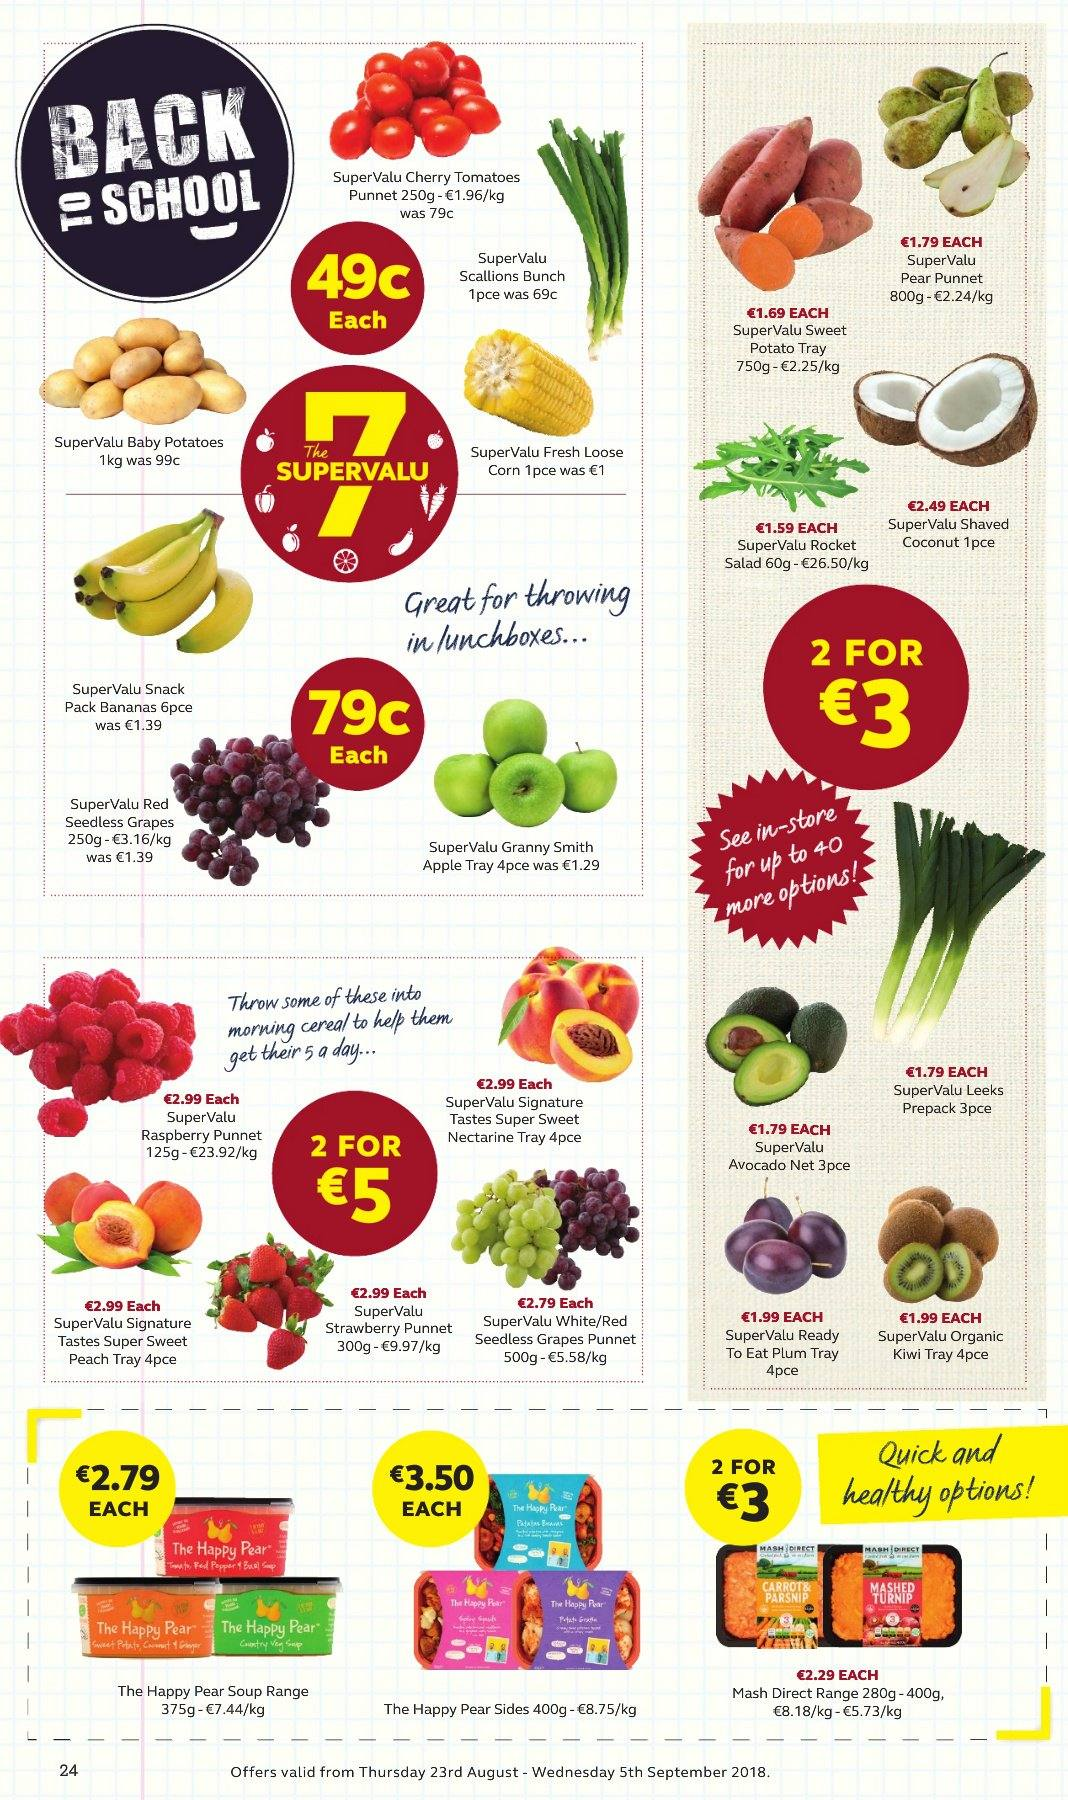 SuperValu offer  - 23.8.2018 - 5.9.2018 - Sales products - seedless grapes, corn, tomatoes, potatoes, salad, scallions, sweet potatoes, avocado, bananas, grapes, kiwi, nectarines, pears, coconut, soup, cereals. Page 24.